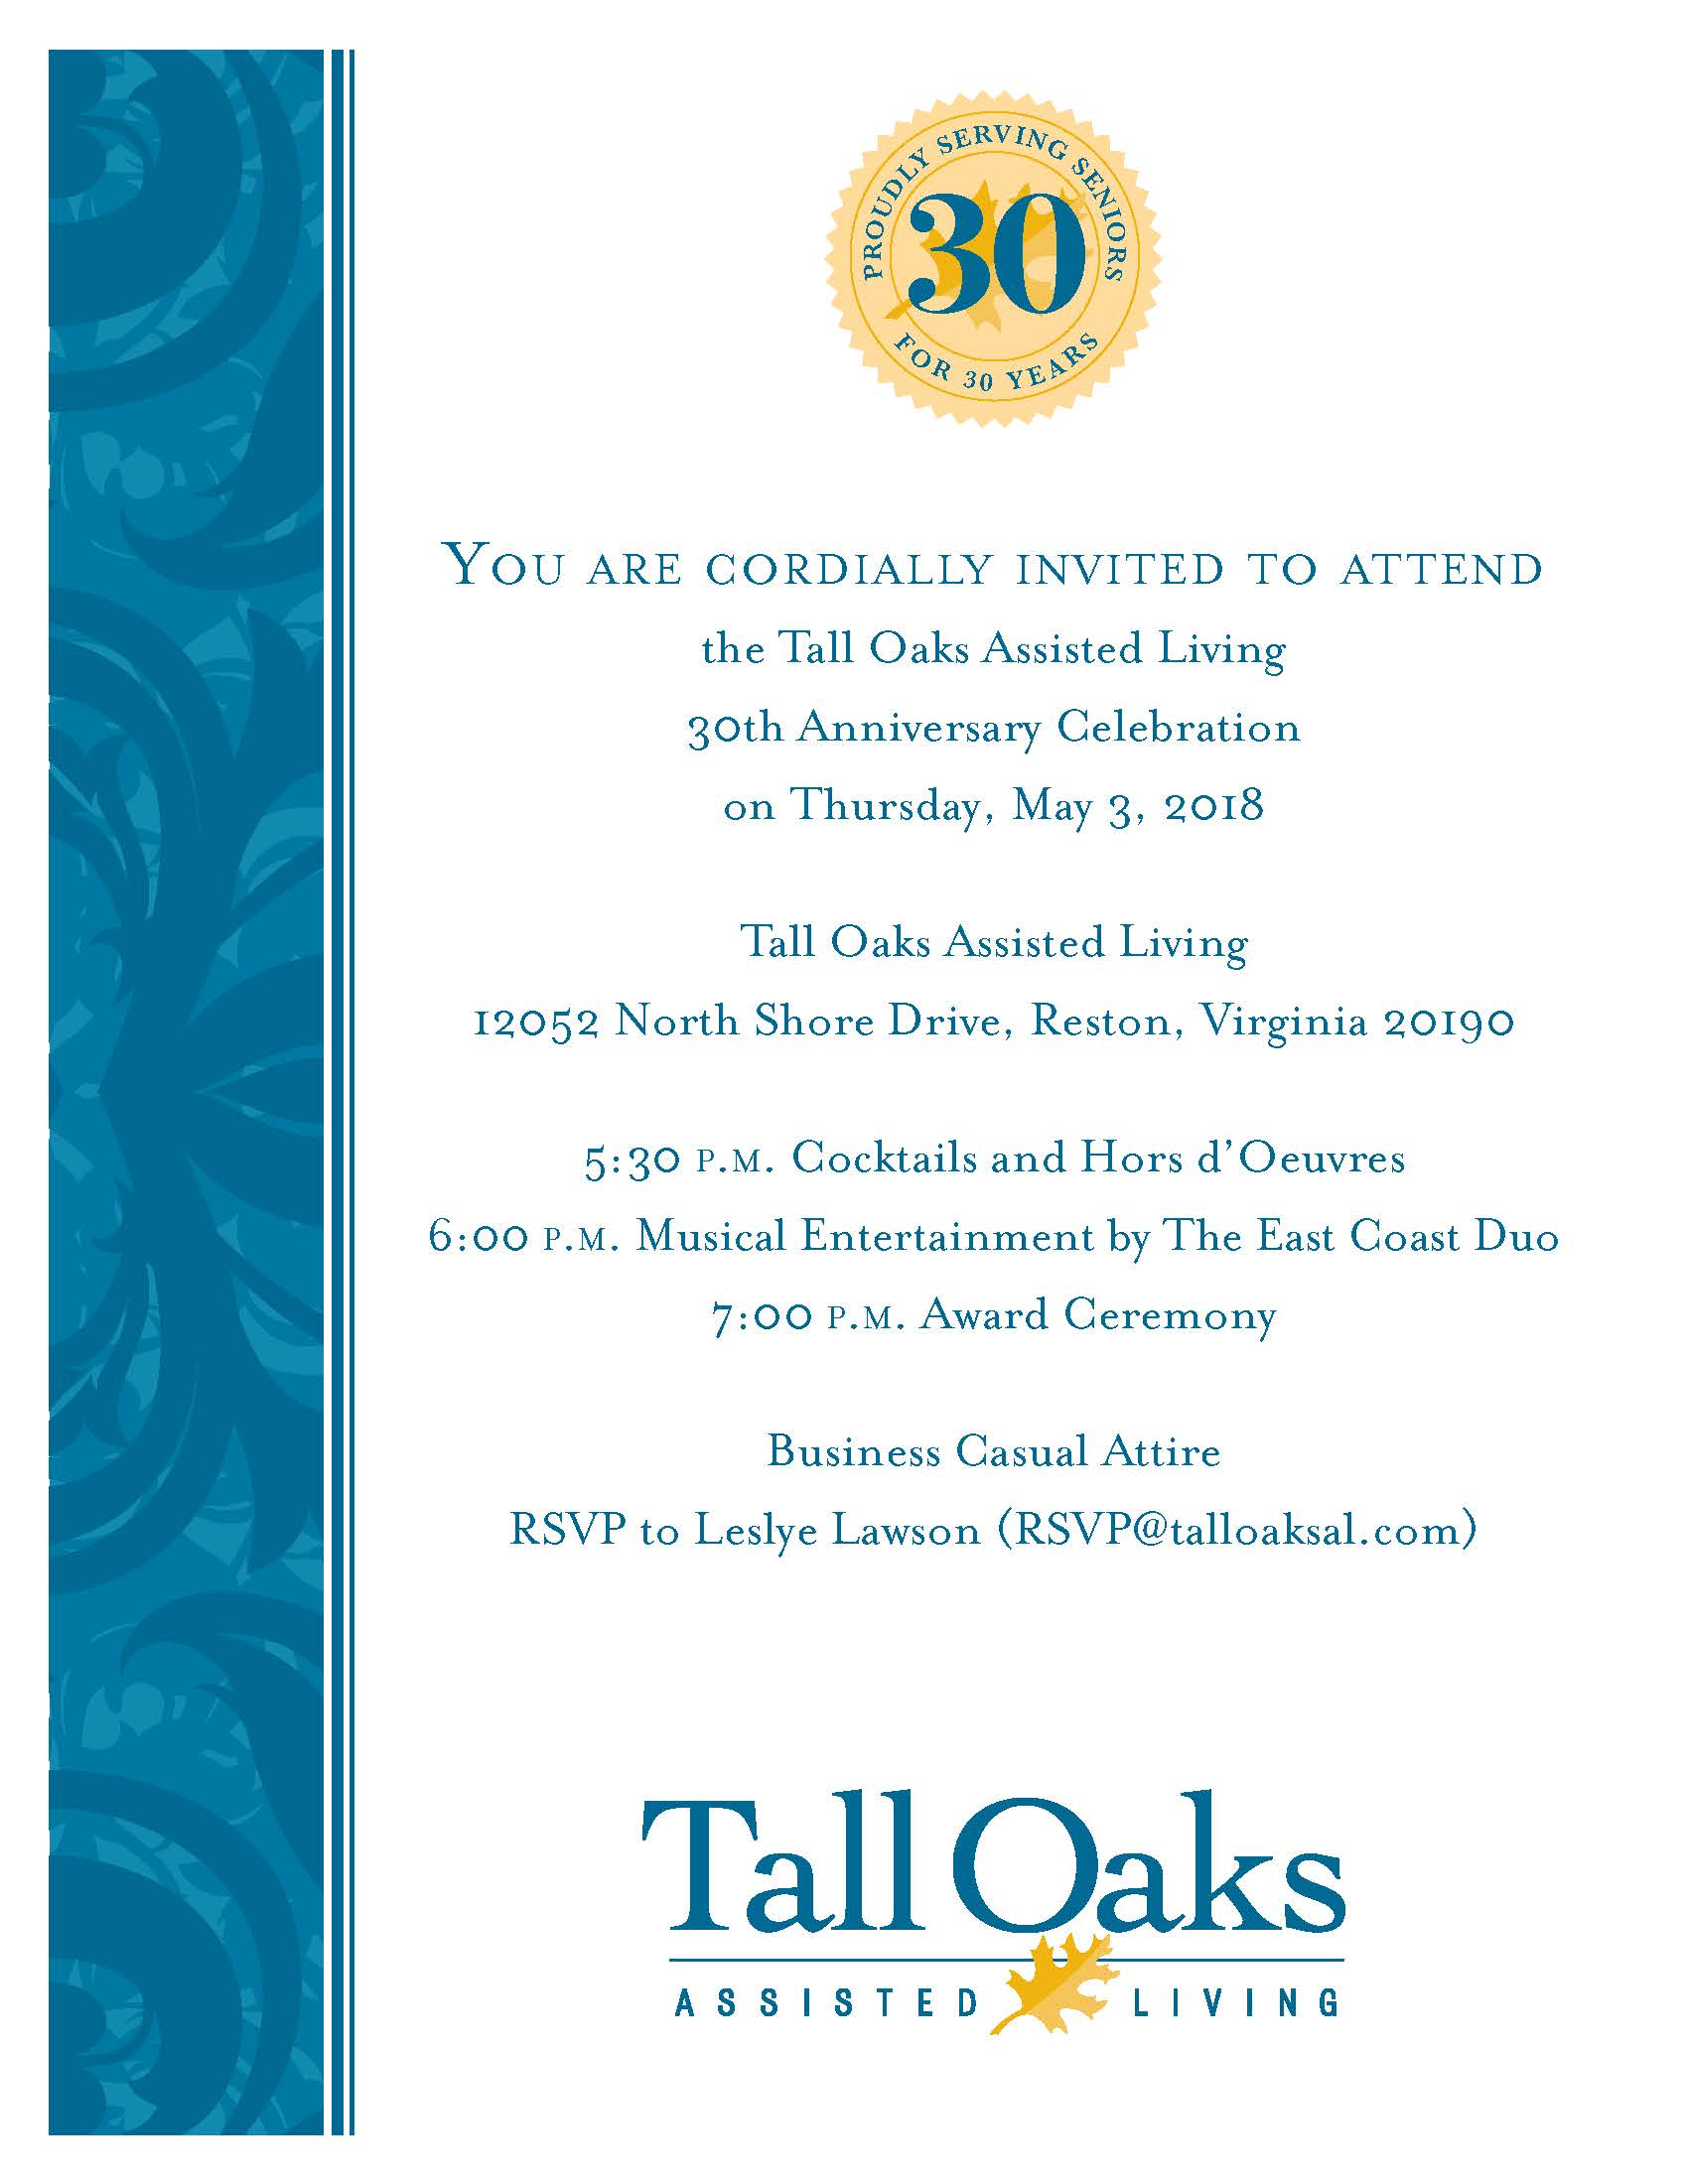 Tall Oaks Anniversary Invitation flyer